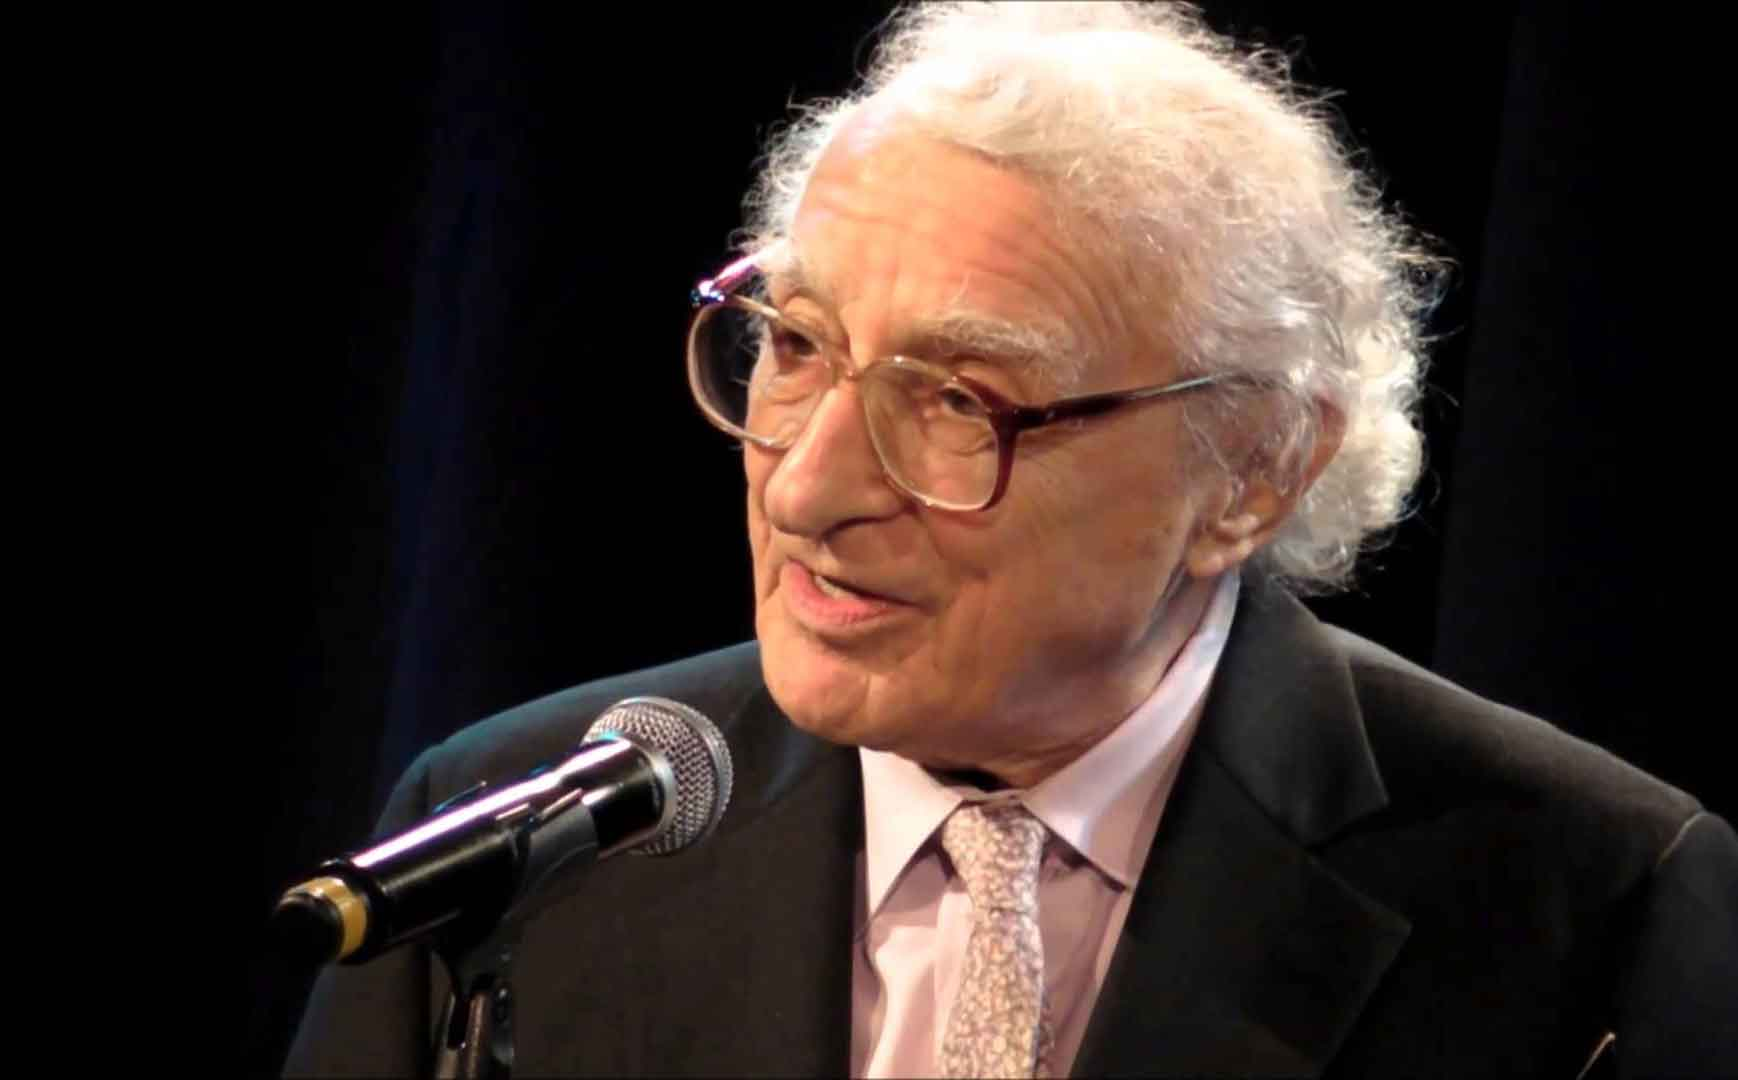 FIDDLER ON THE ROOF introduced by lyricist Sheldon Harnick